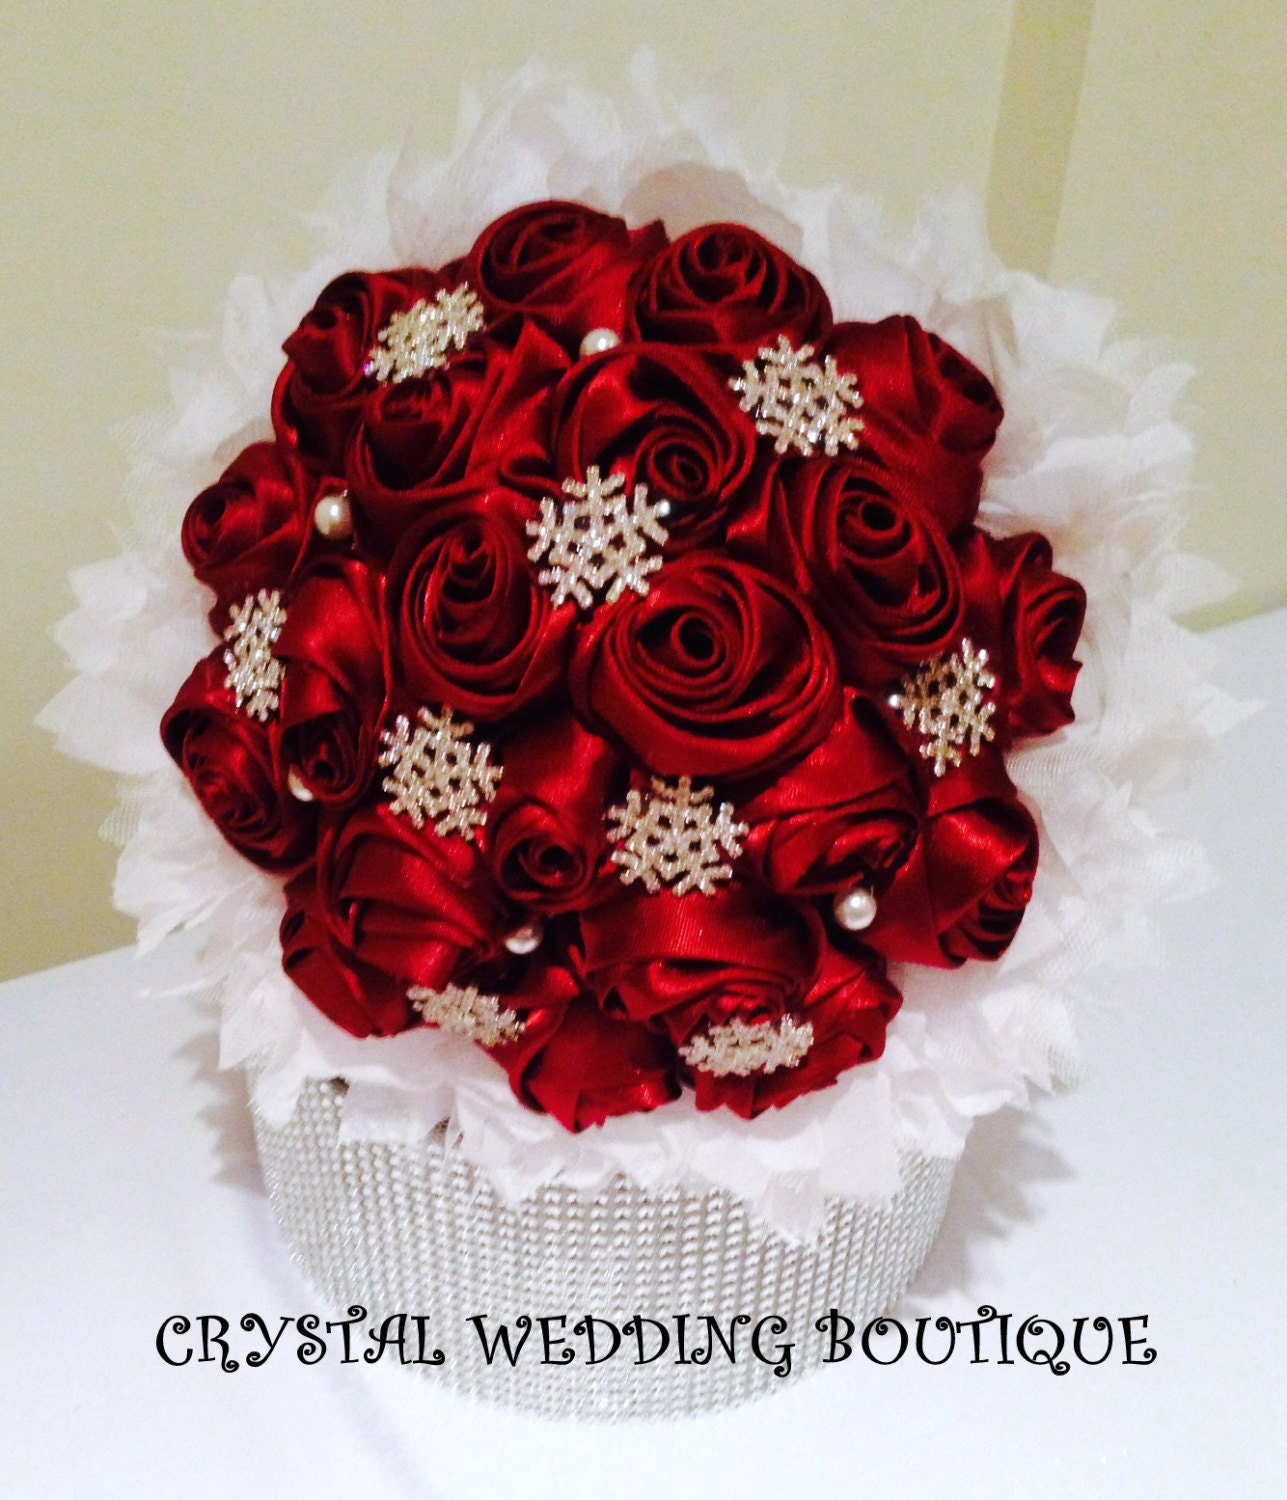 Christmas Wedding Bouquets And Flowers: Christmas Winter Wedding Bouquet By CrystalWeddingBtq On Etsy